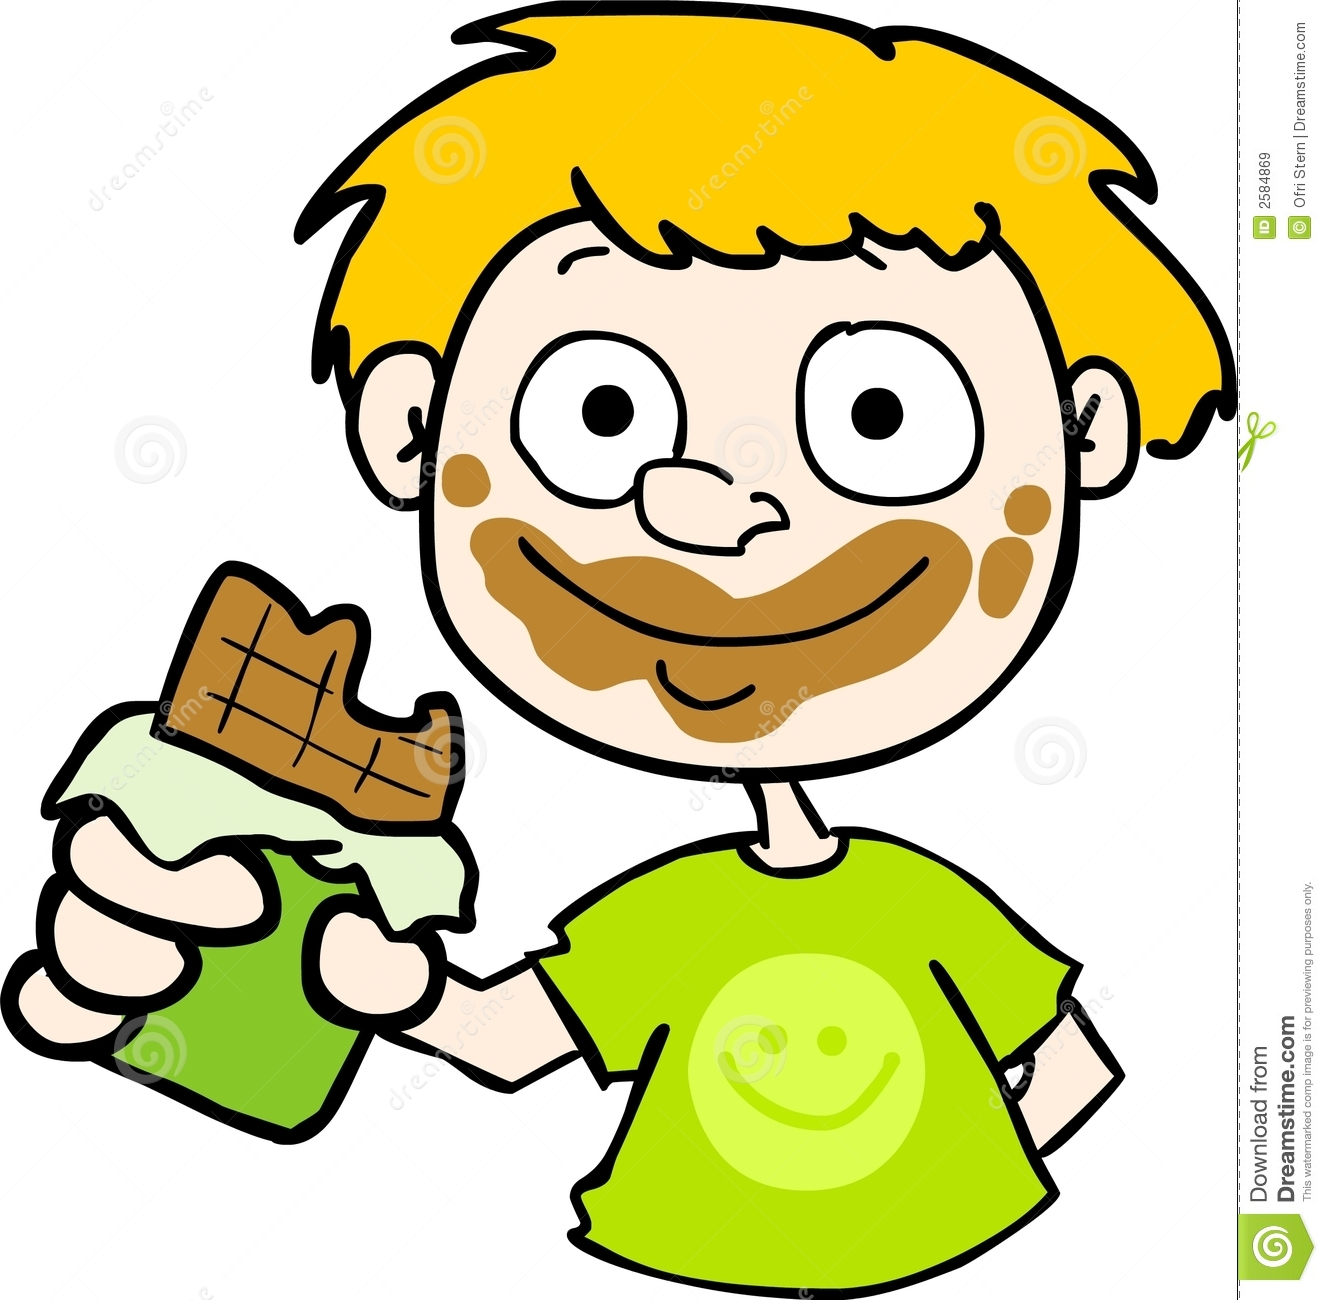 Girl eating chocolate clipart clipart kid